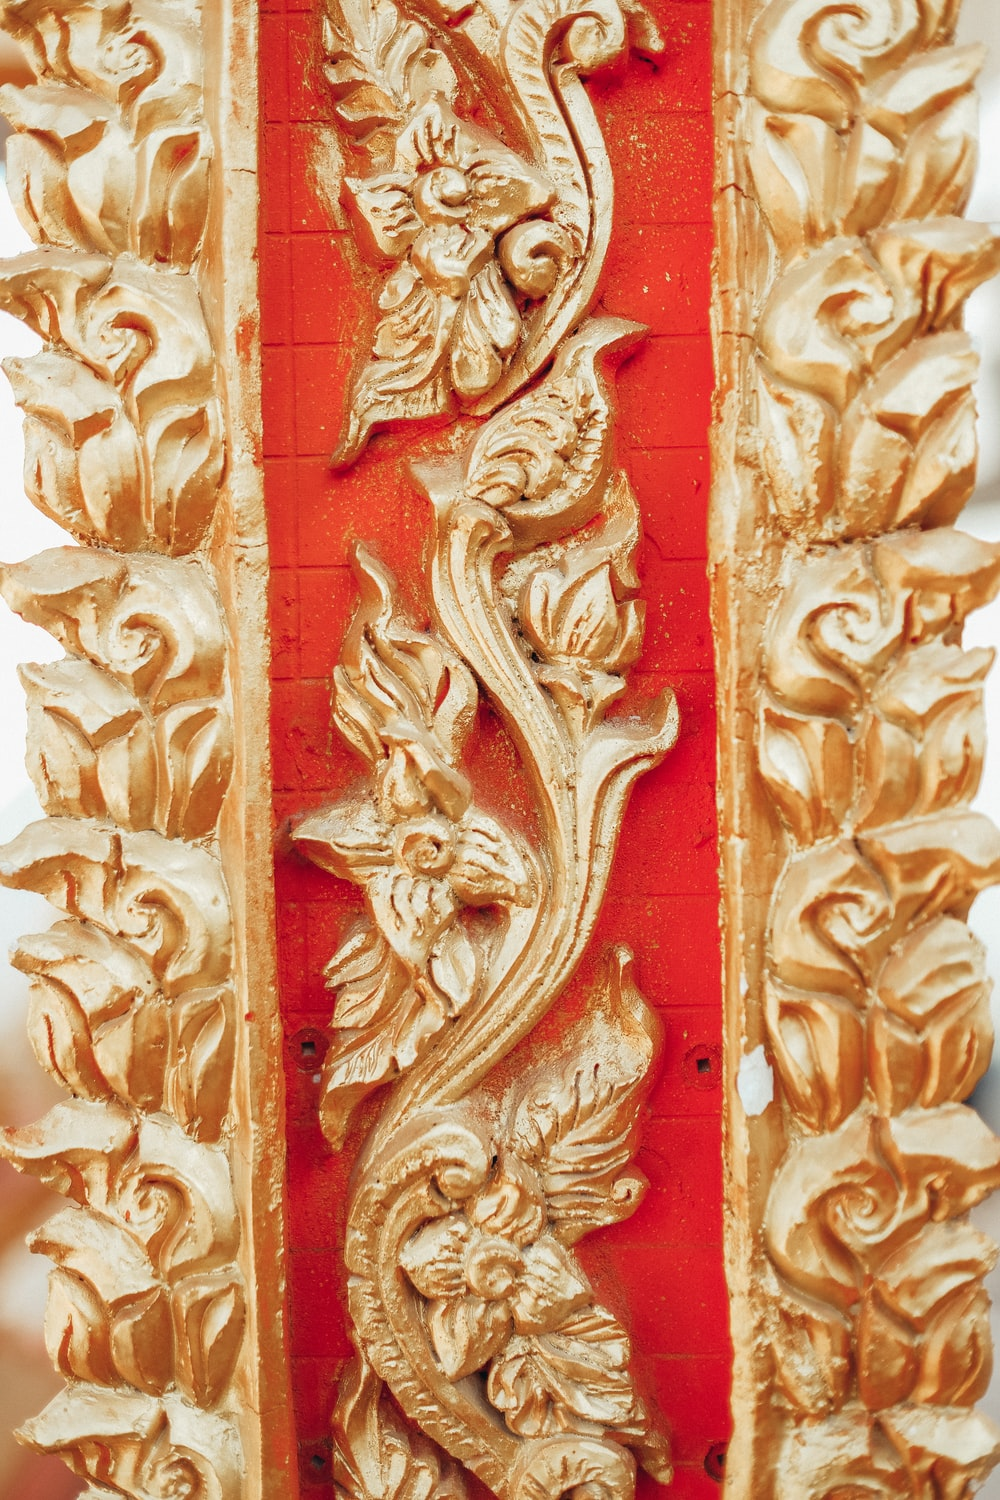 gold and red floral embossed wall decor